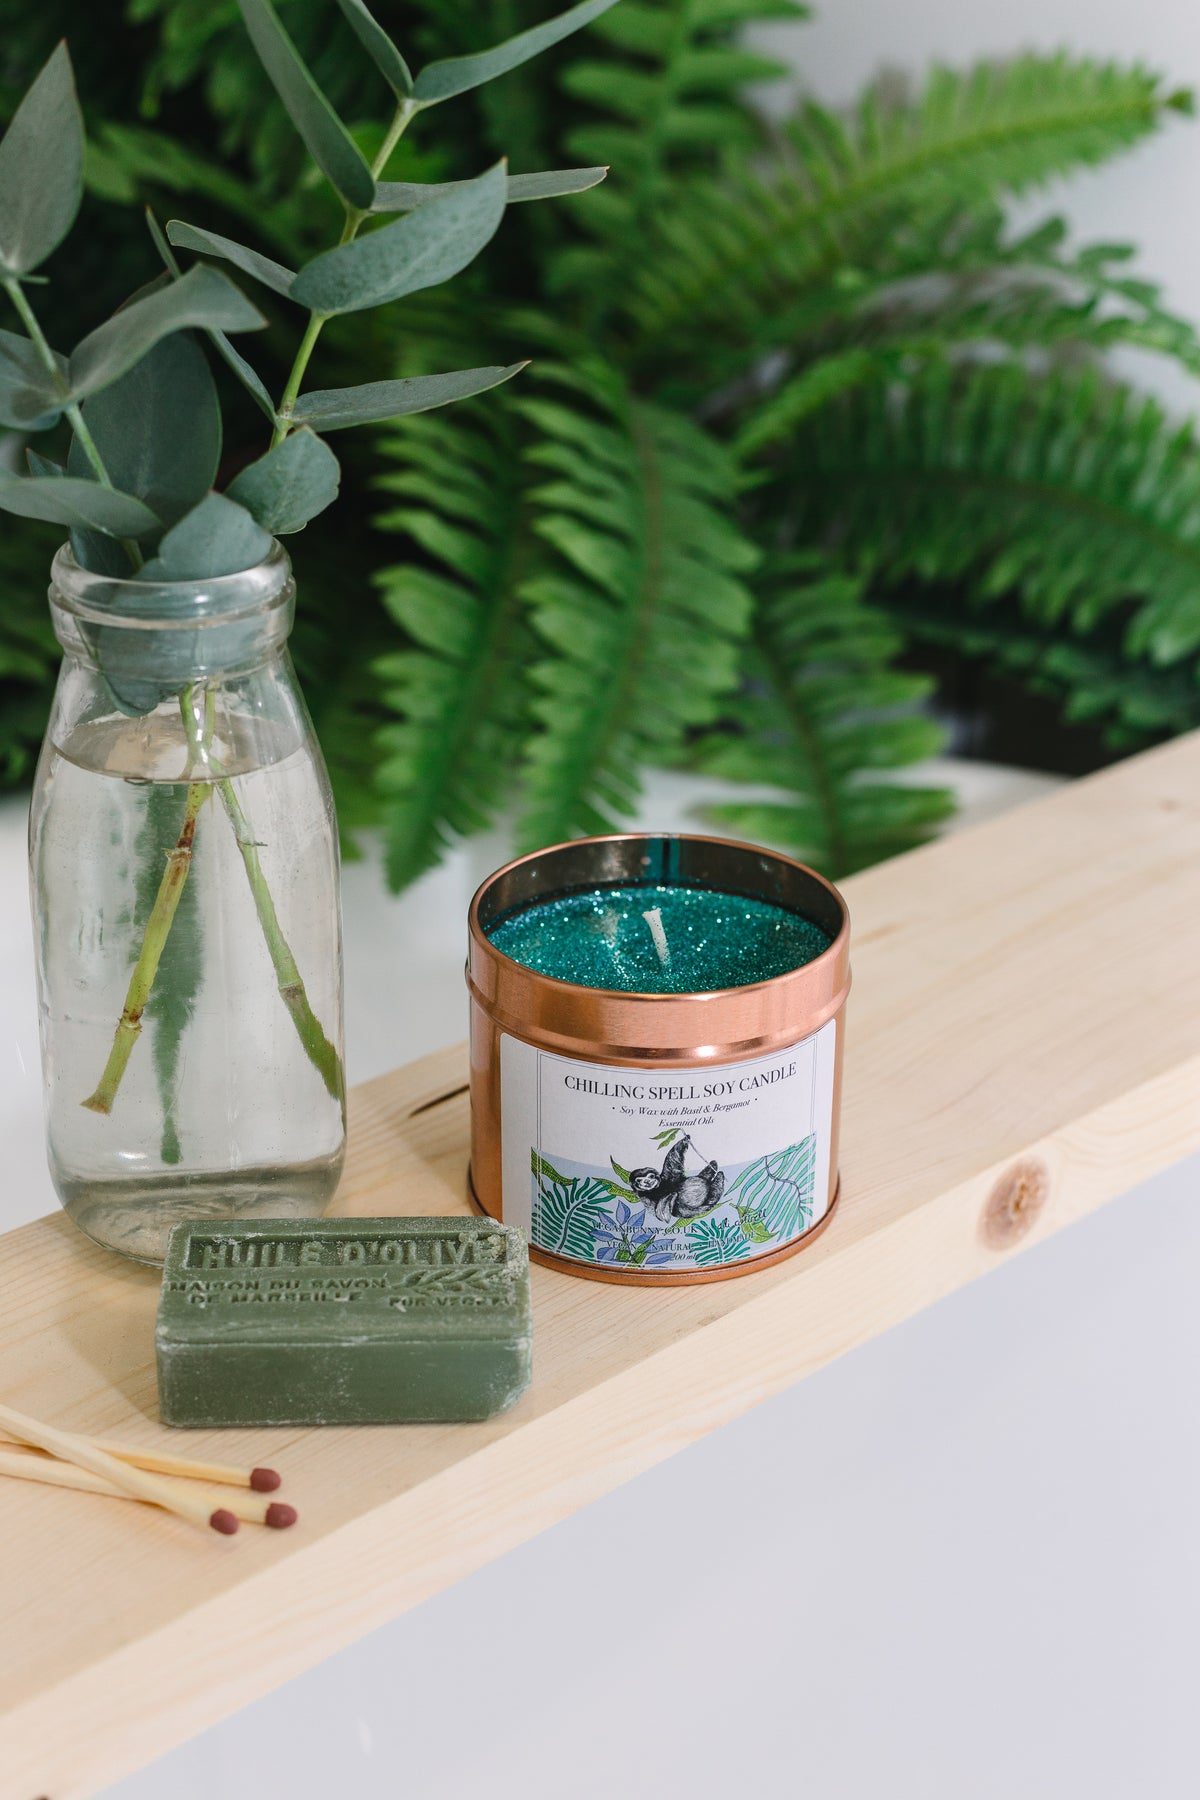 Chilling Spell Soy Candle